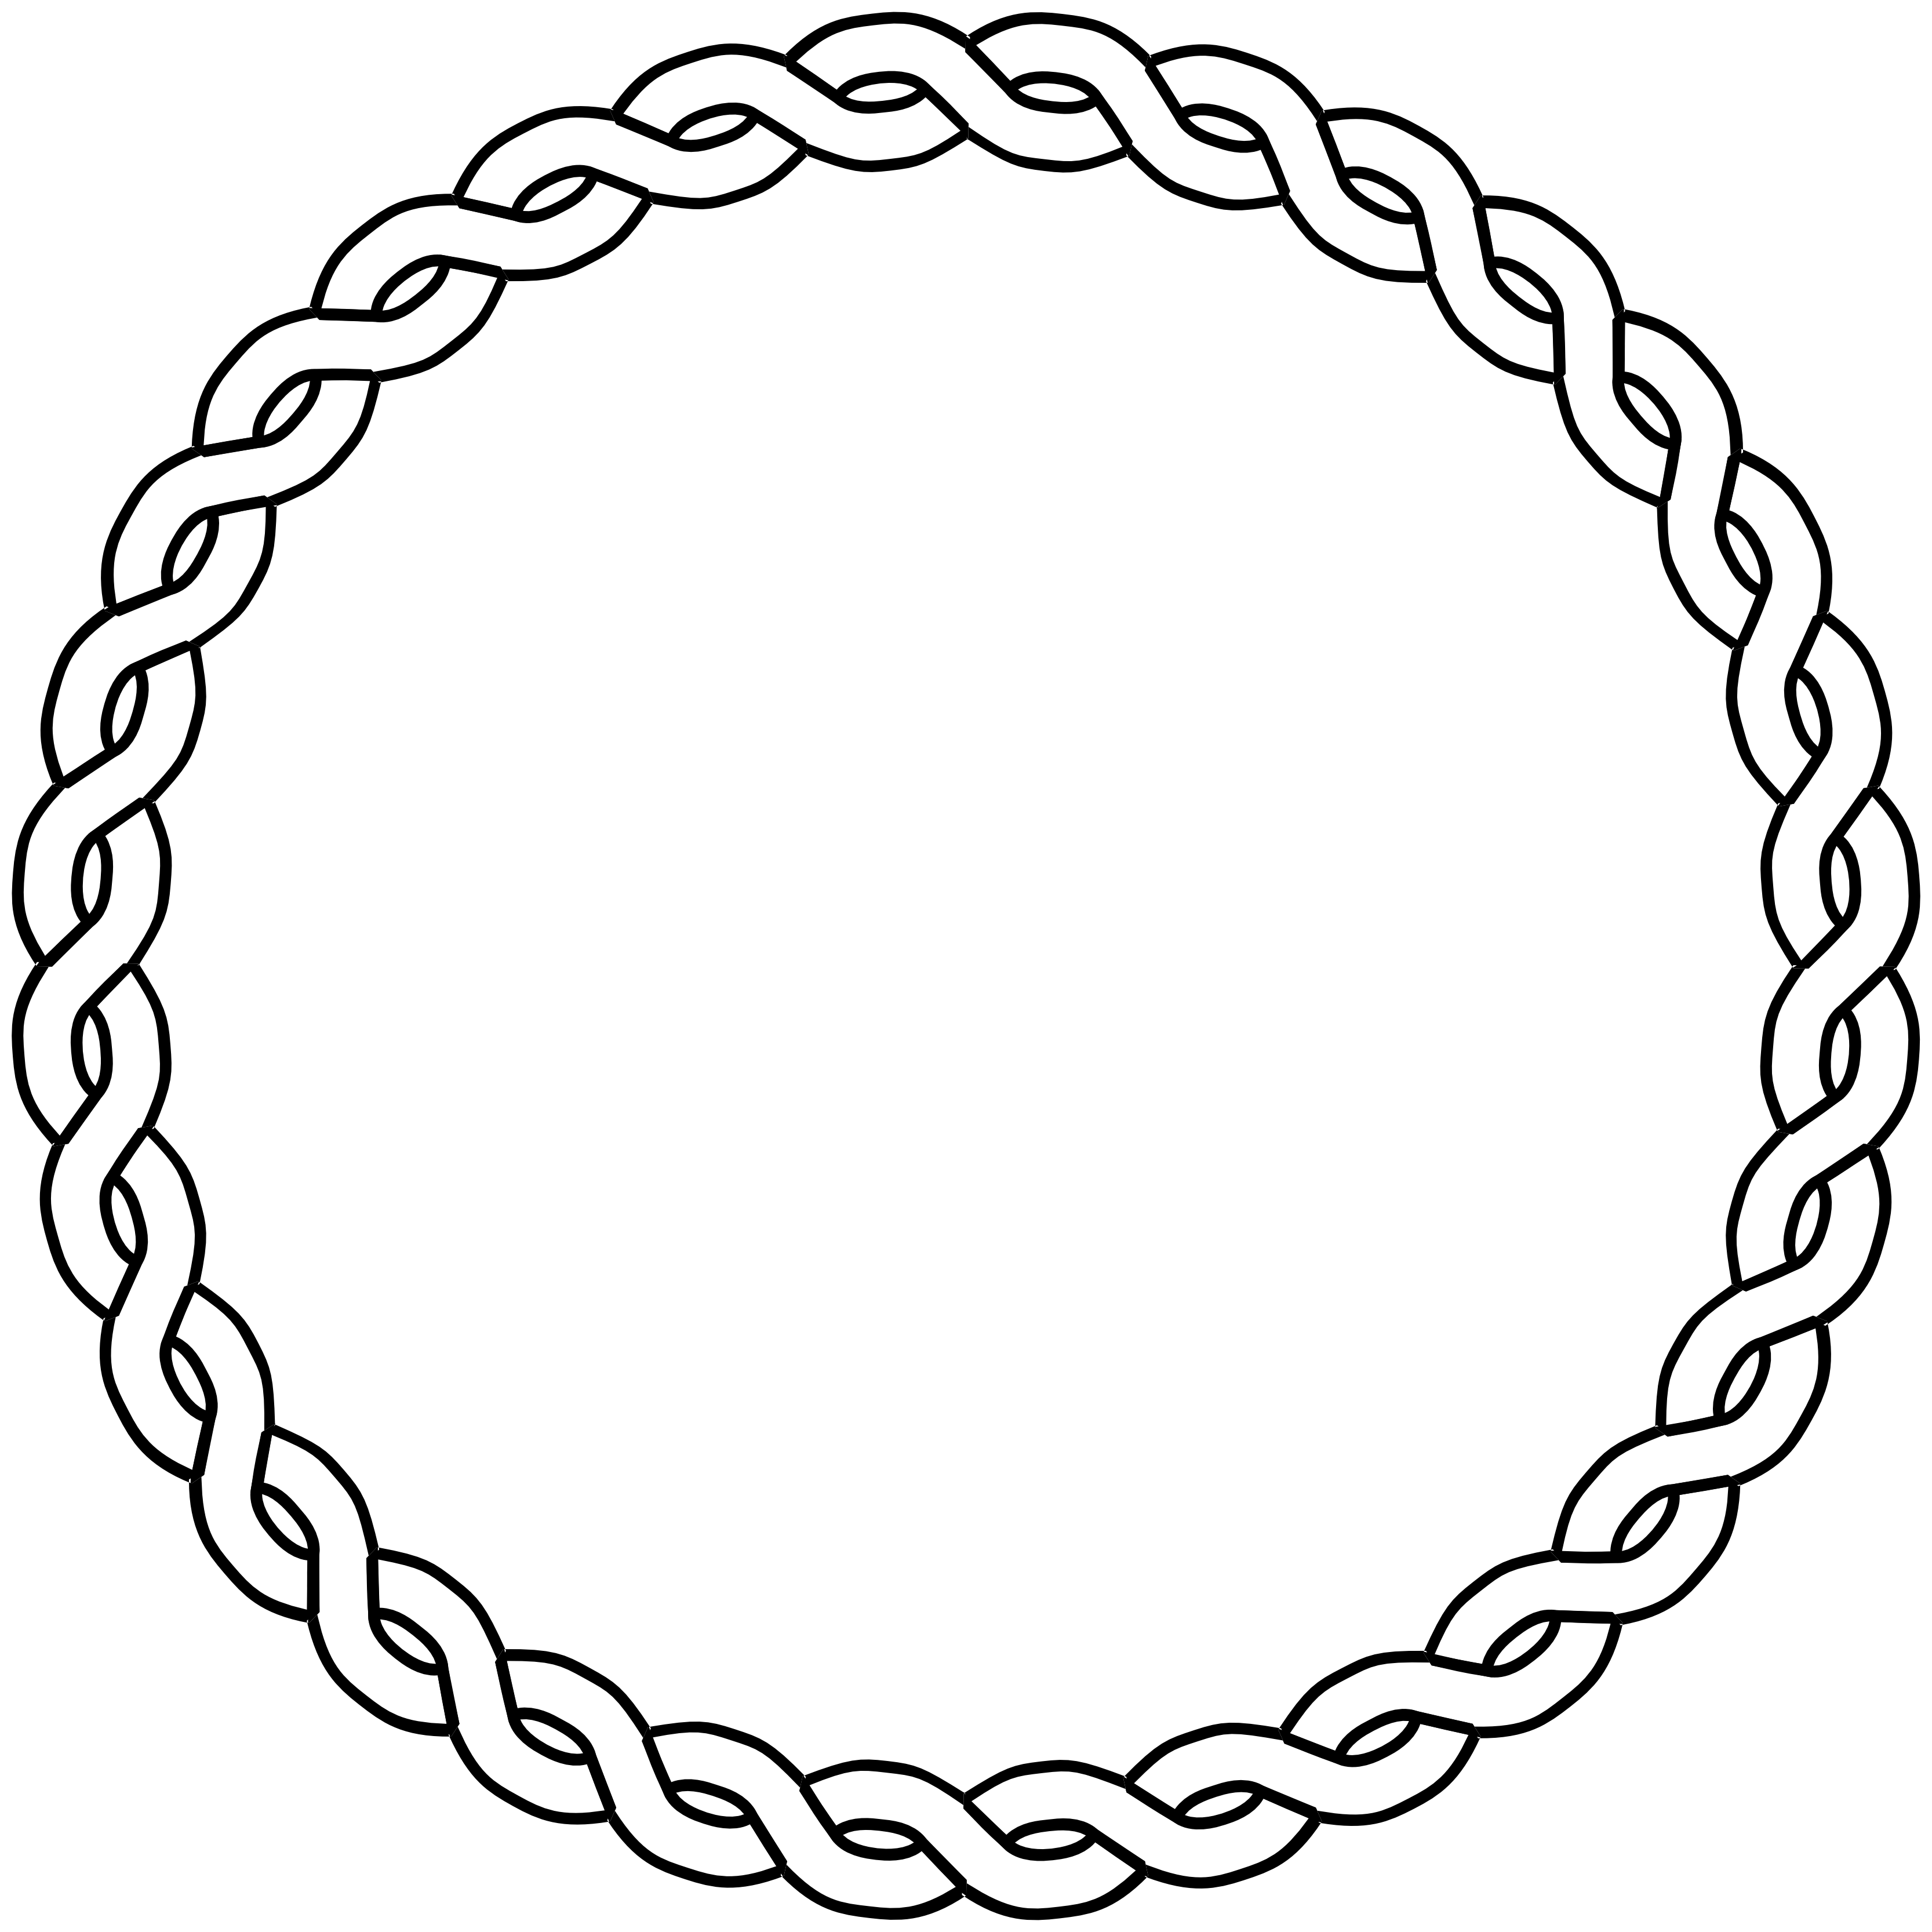 clip black and white library Border circle black white. Drawing rope pencil